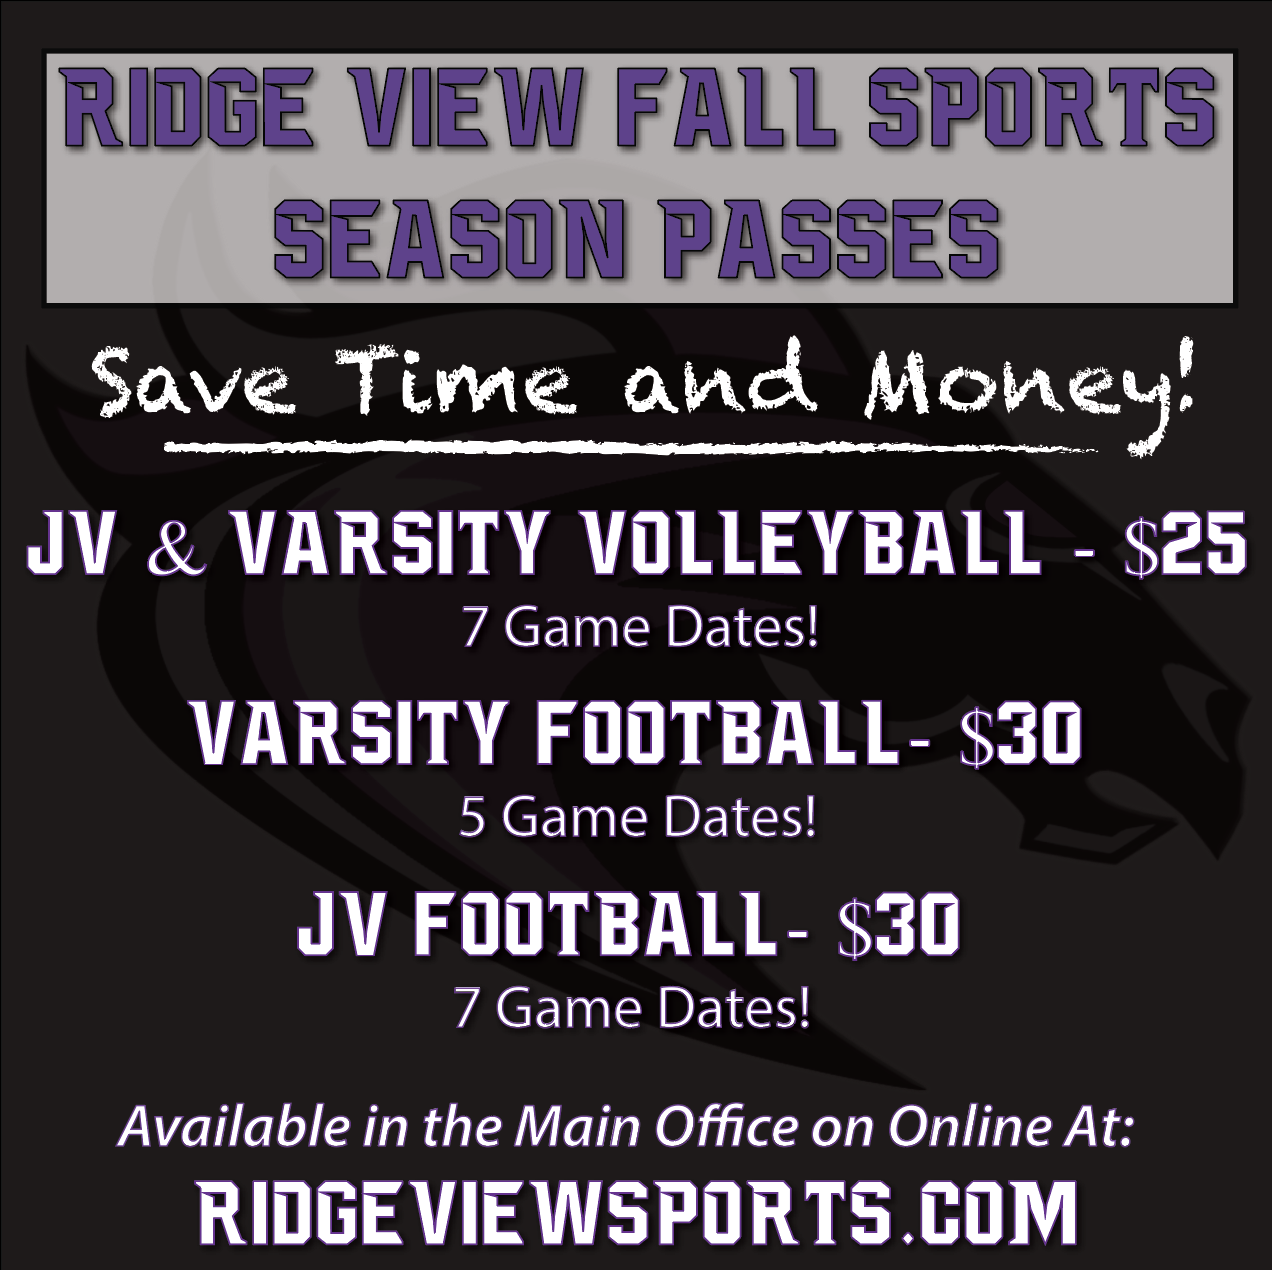 Fall Sports Season Passes Now On Sale!